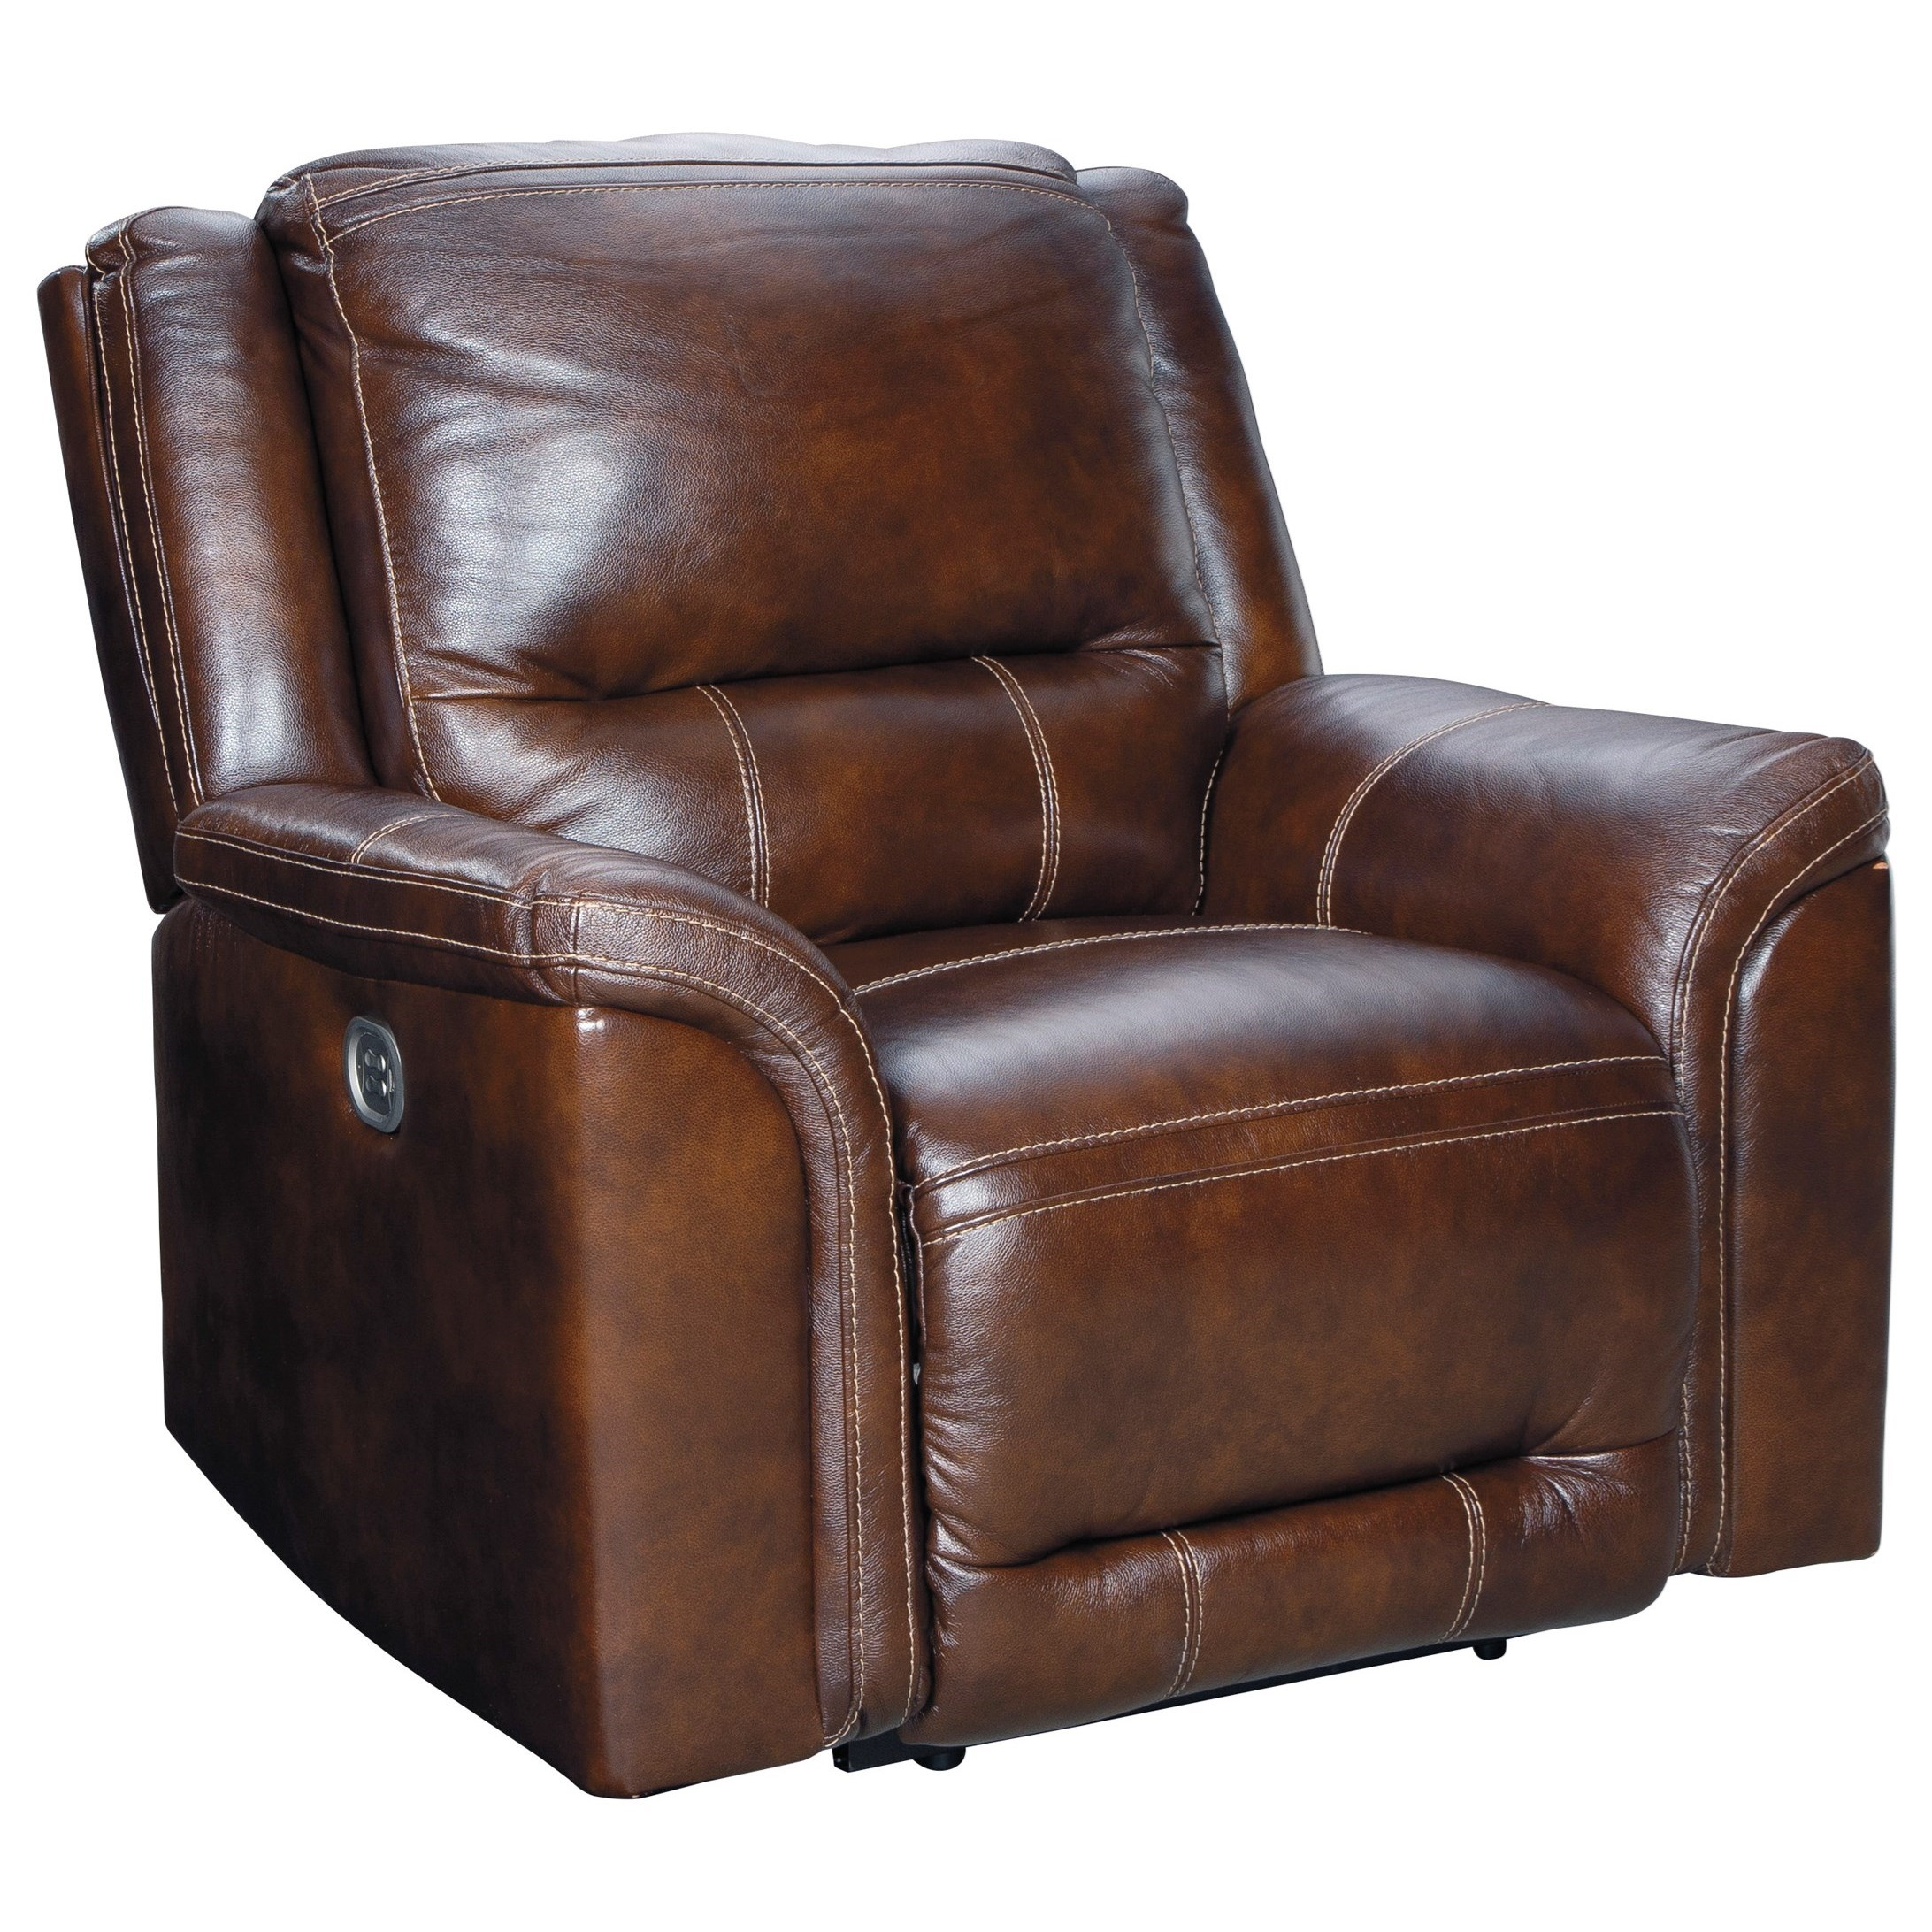 Catanzaro Power Recliner by Signature Design by Ashley at Standard Furniture